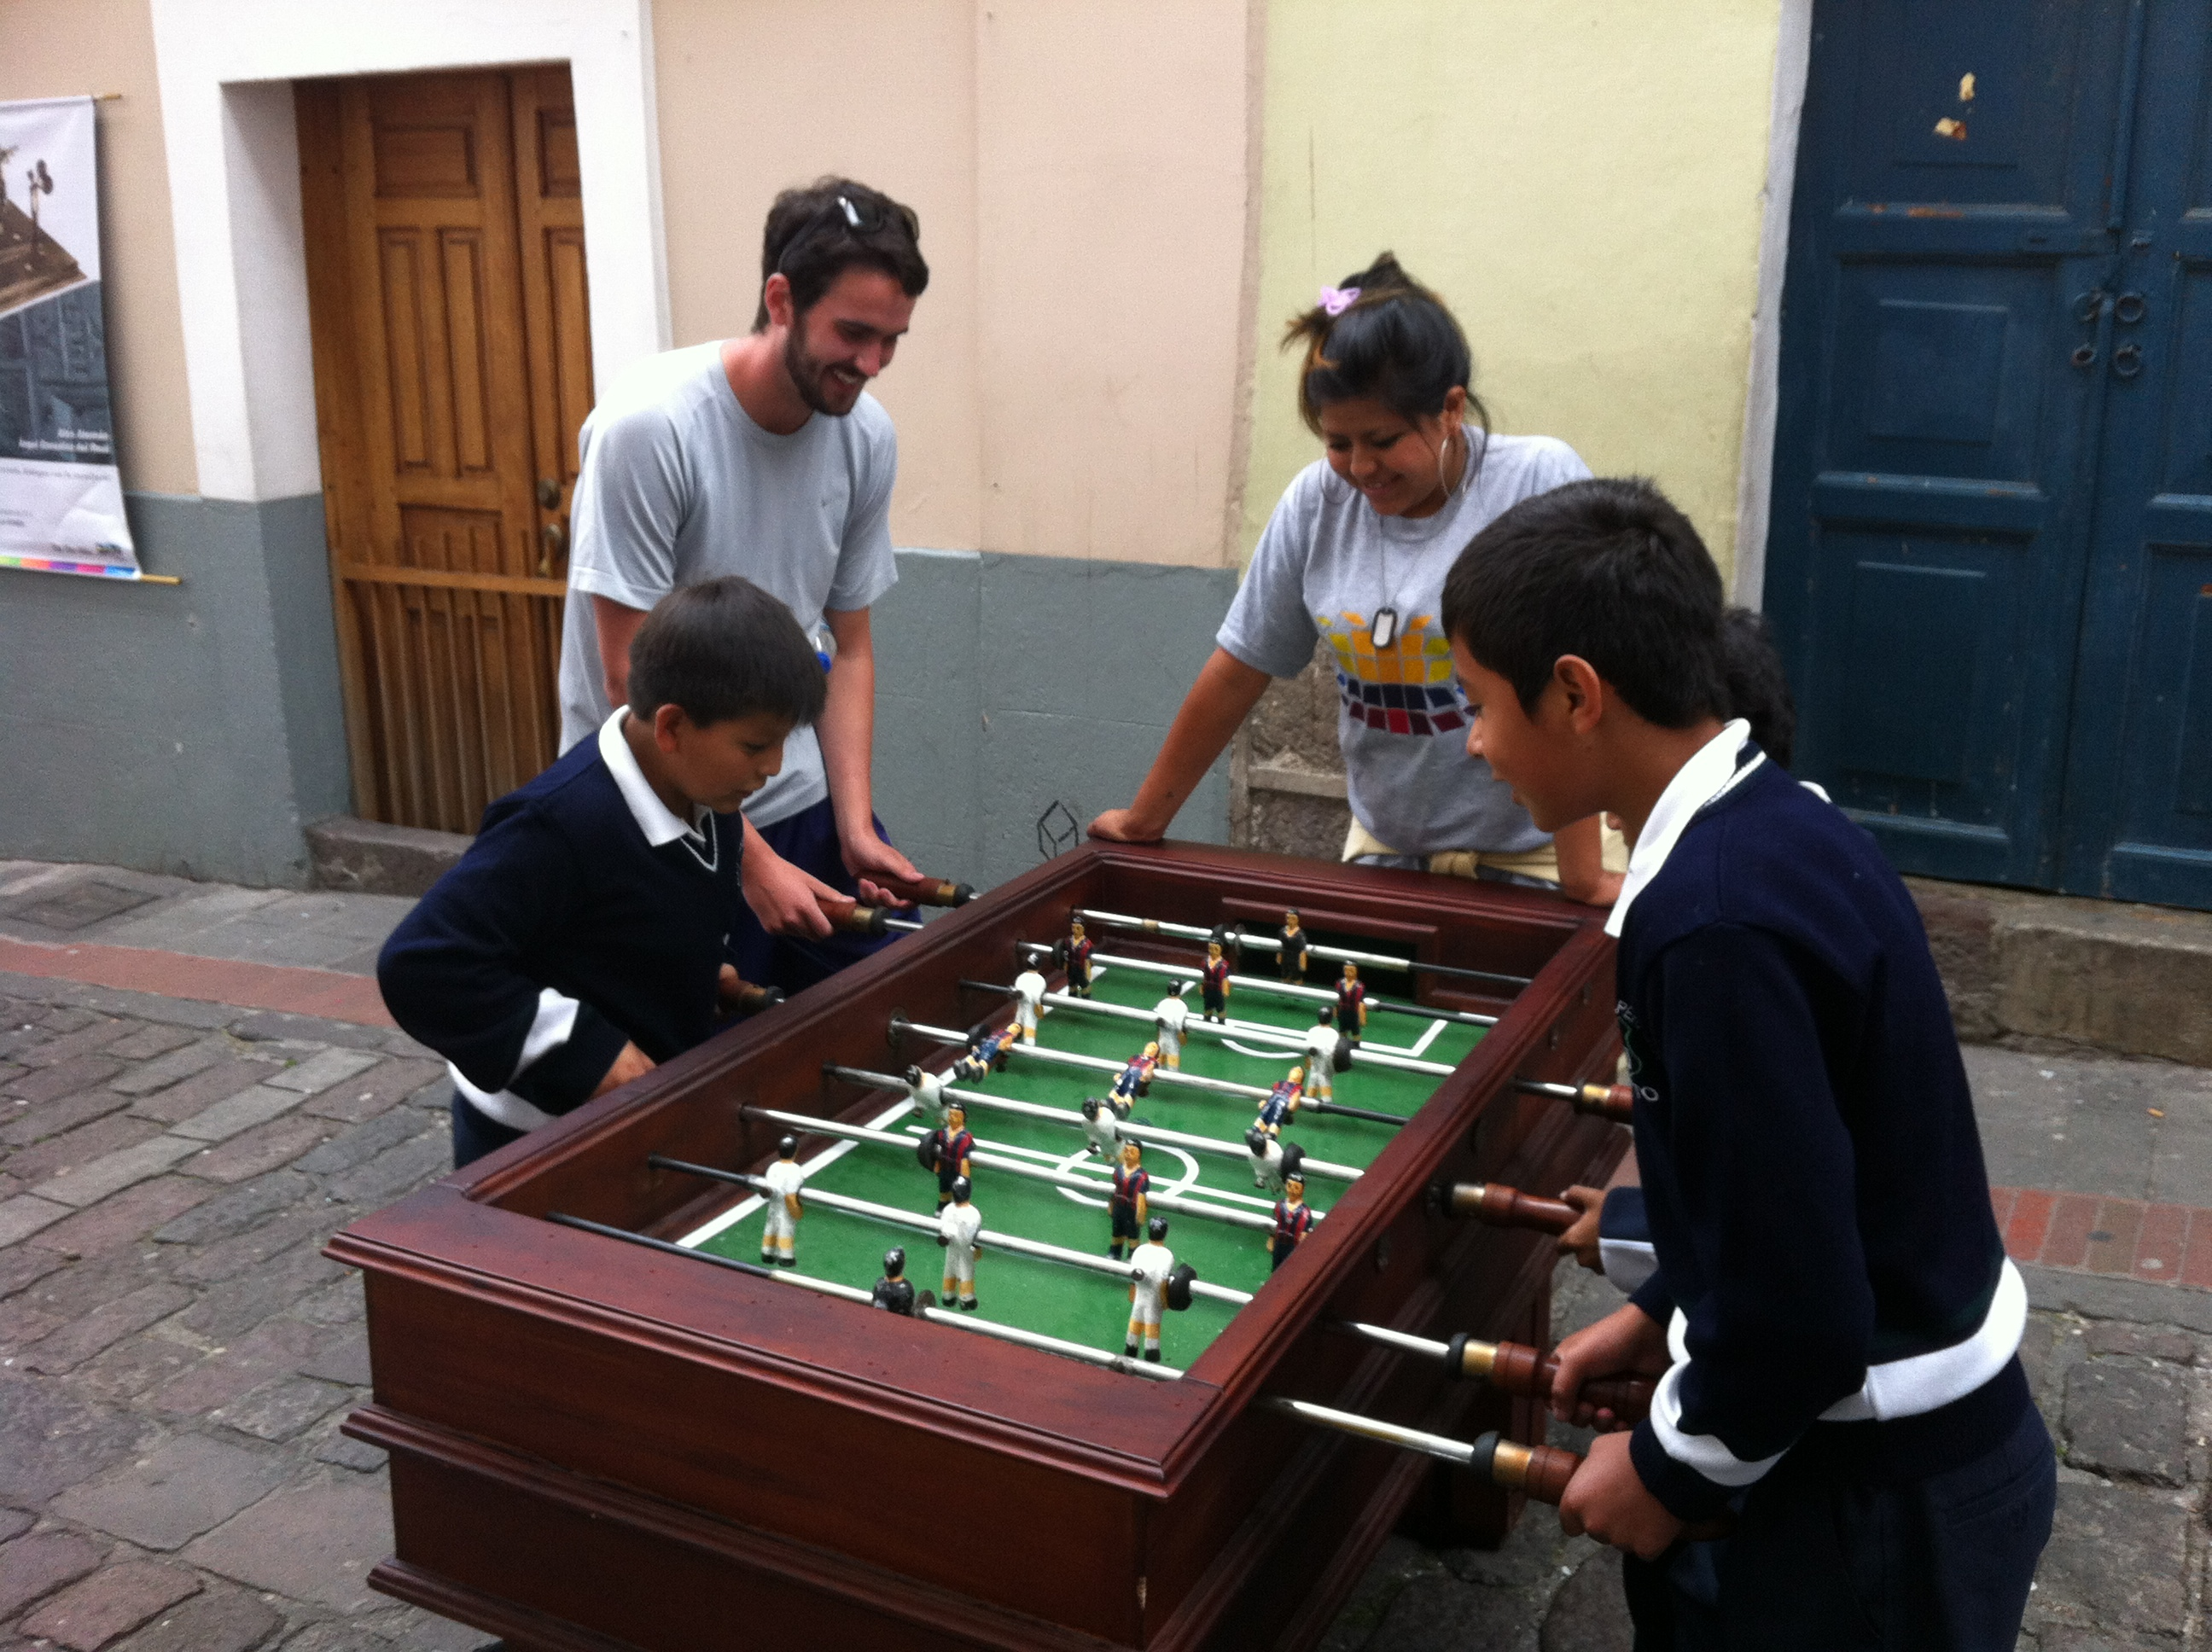 Foosball in La Ronda | Photo by Wilson Carletti (All Rights Reserved)